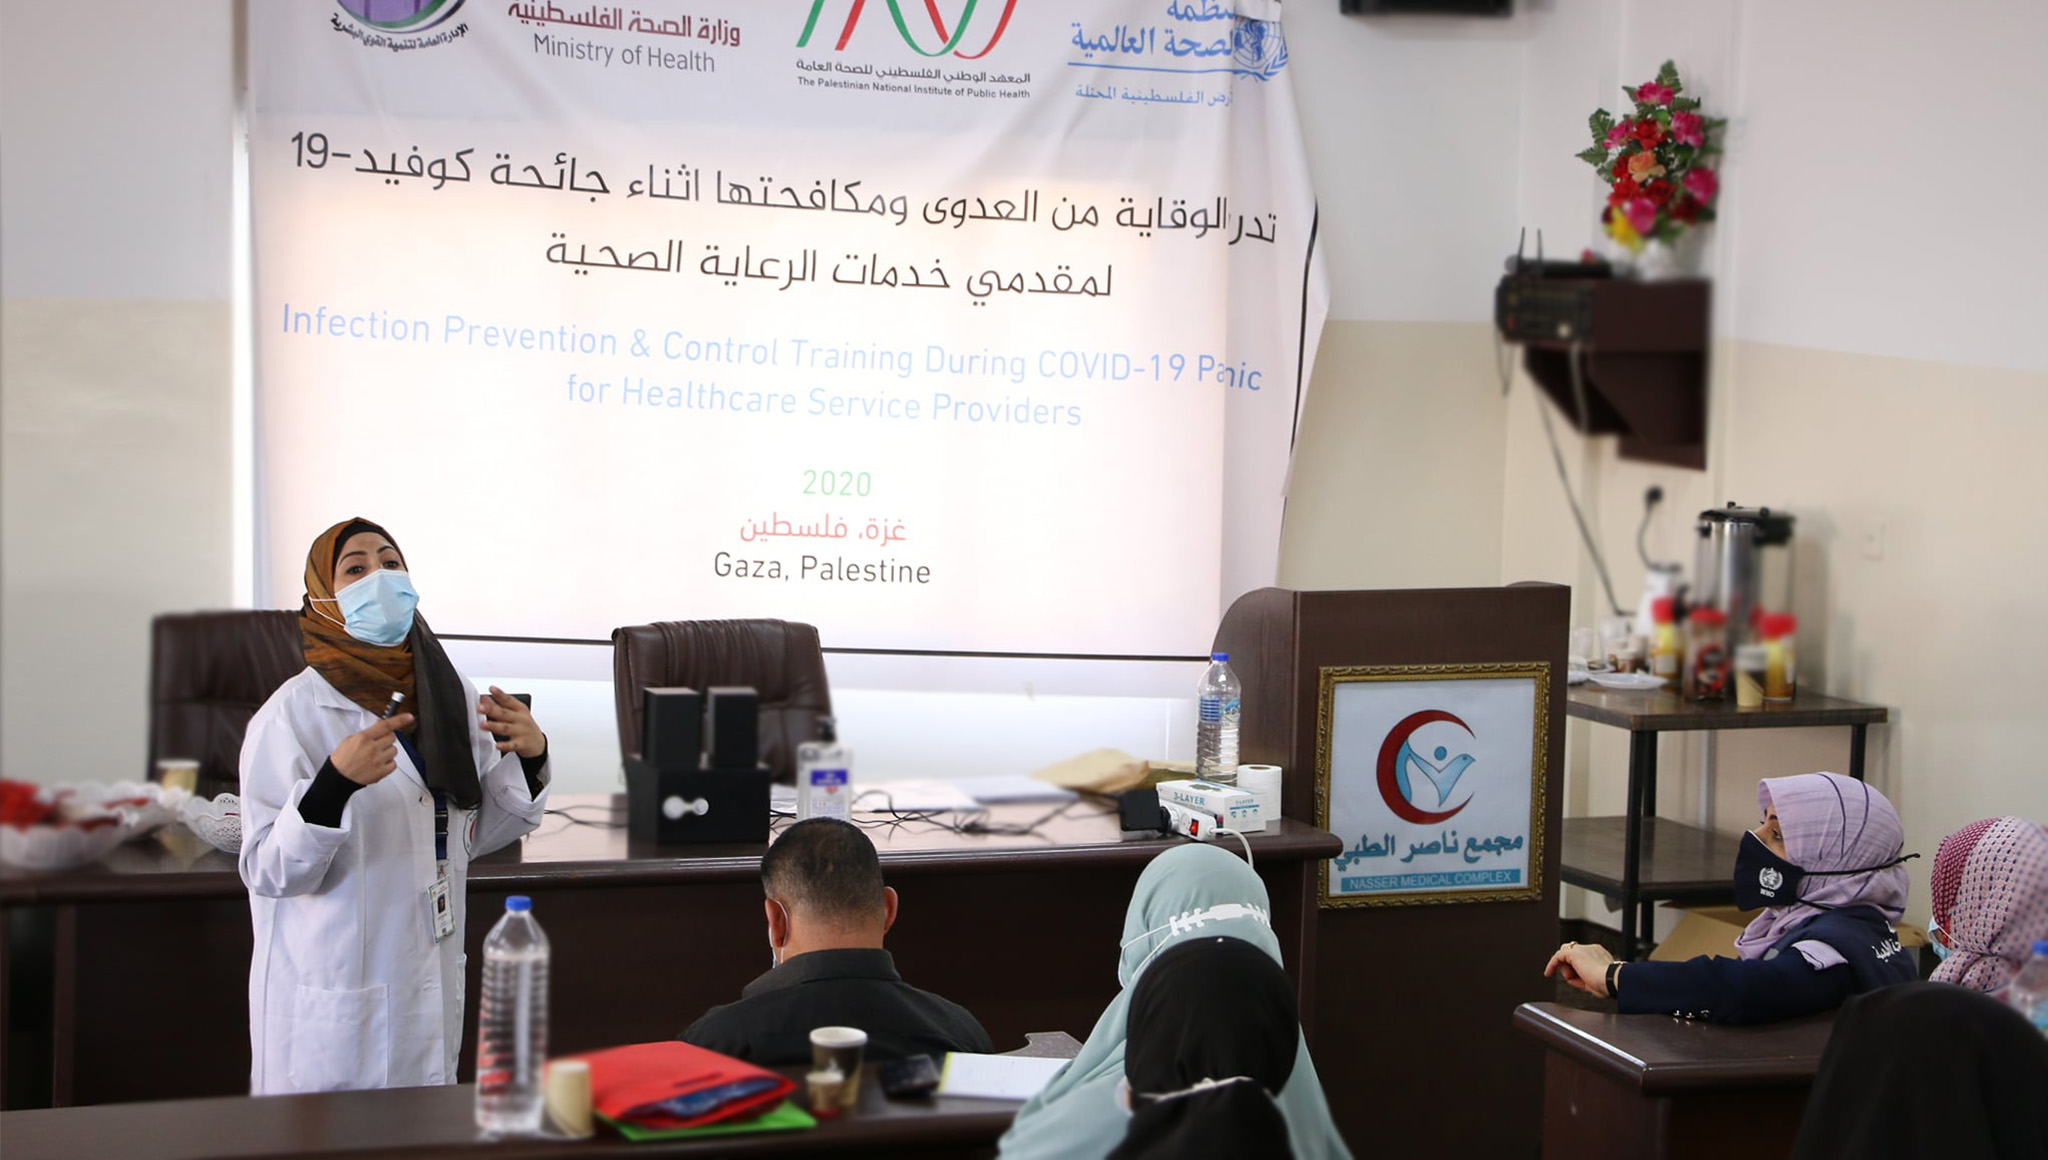 Gaza: Infection Prevention and Control (IPC) during COVID-19